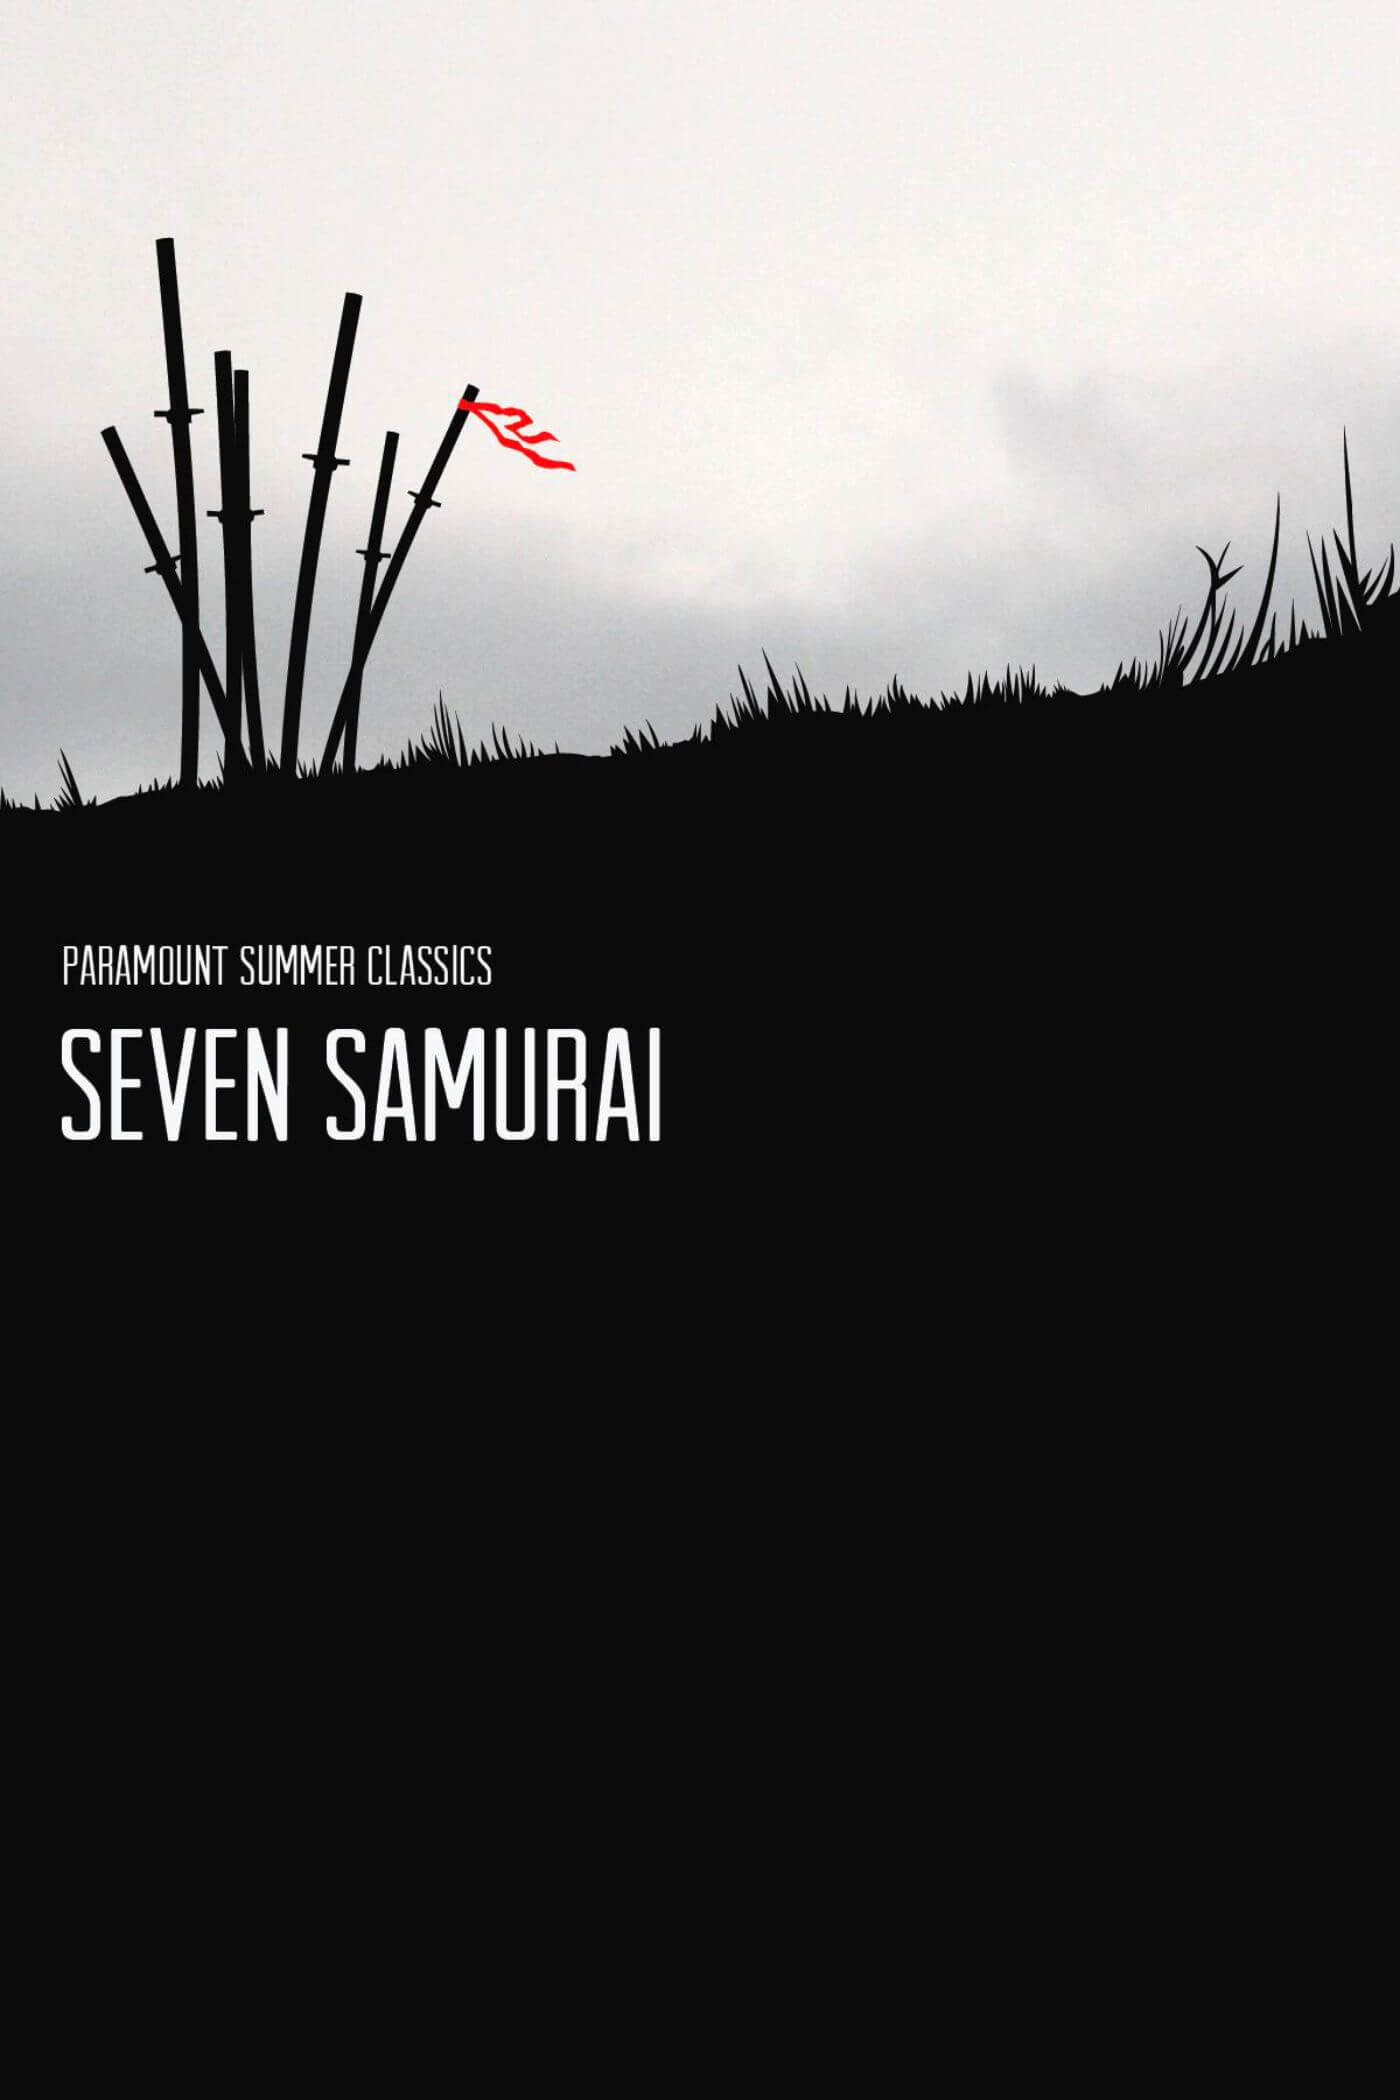 Seven Samurai - Akira Kurosawa Japanese Cinema Masterpiece - Movie Art Graphic Poster